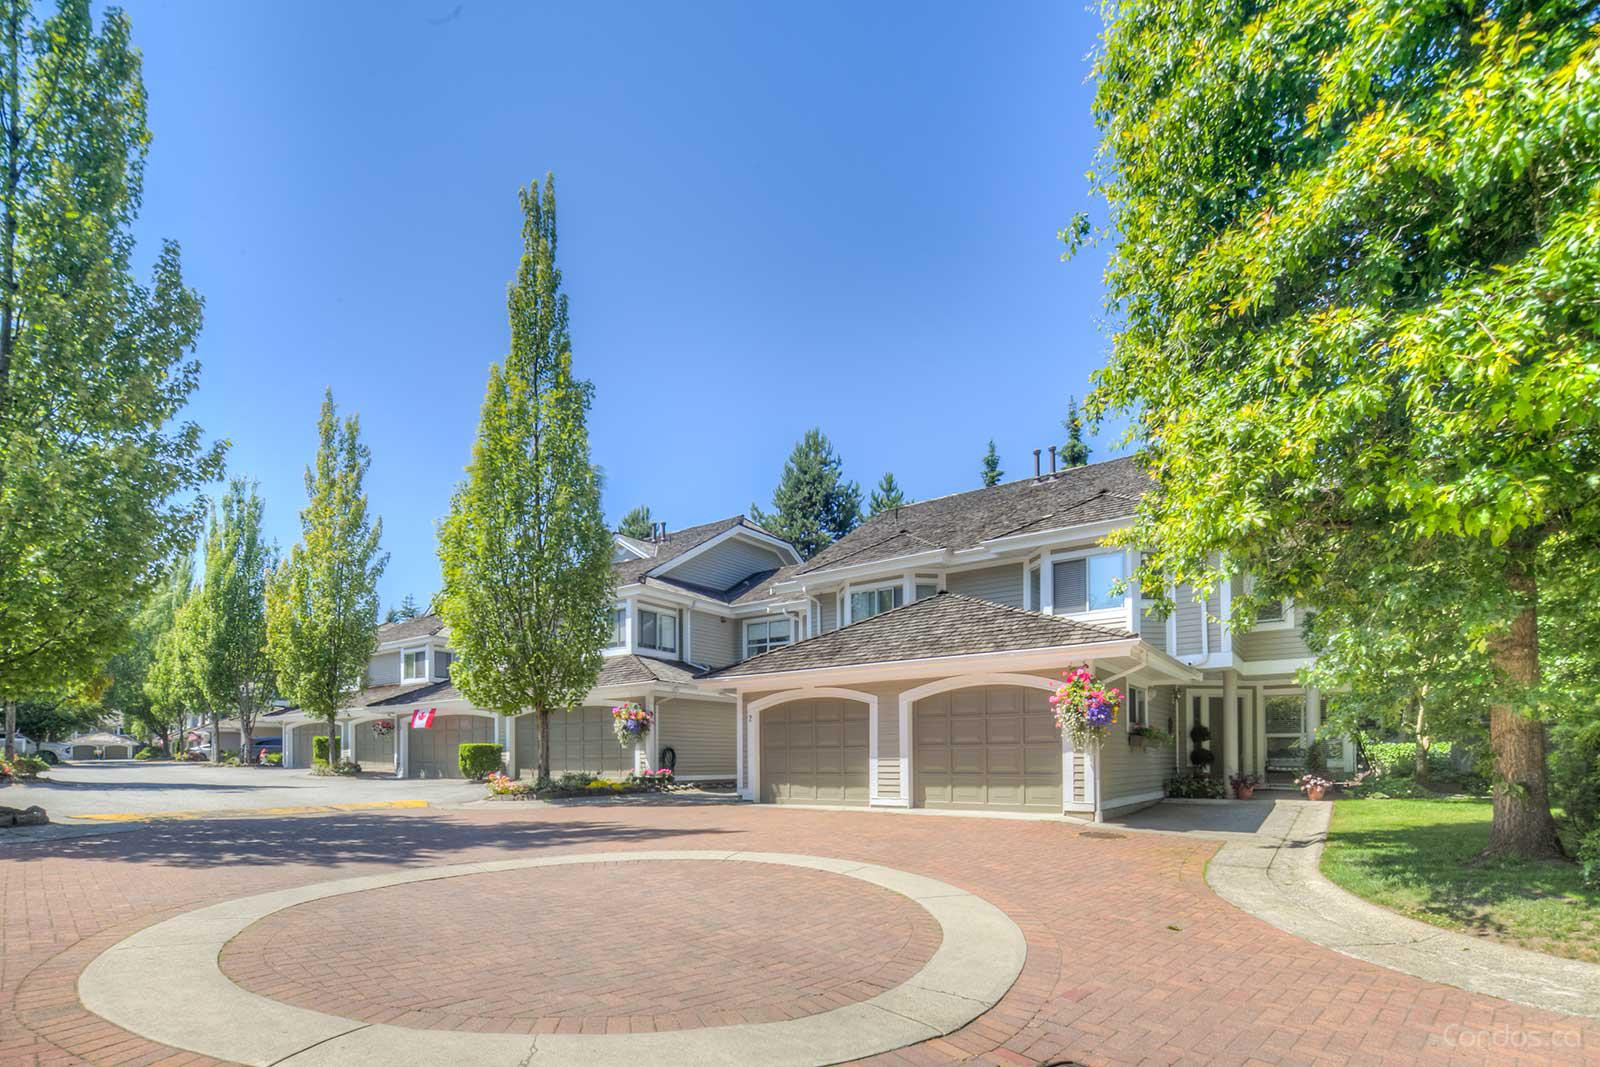 Raven Woods at 650 Roche Point Dr, North Vancouver District 1